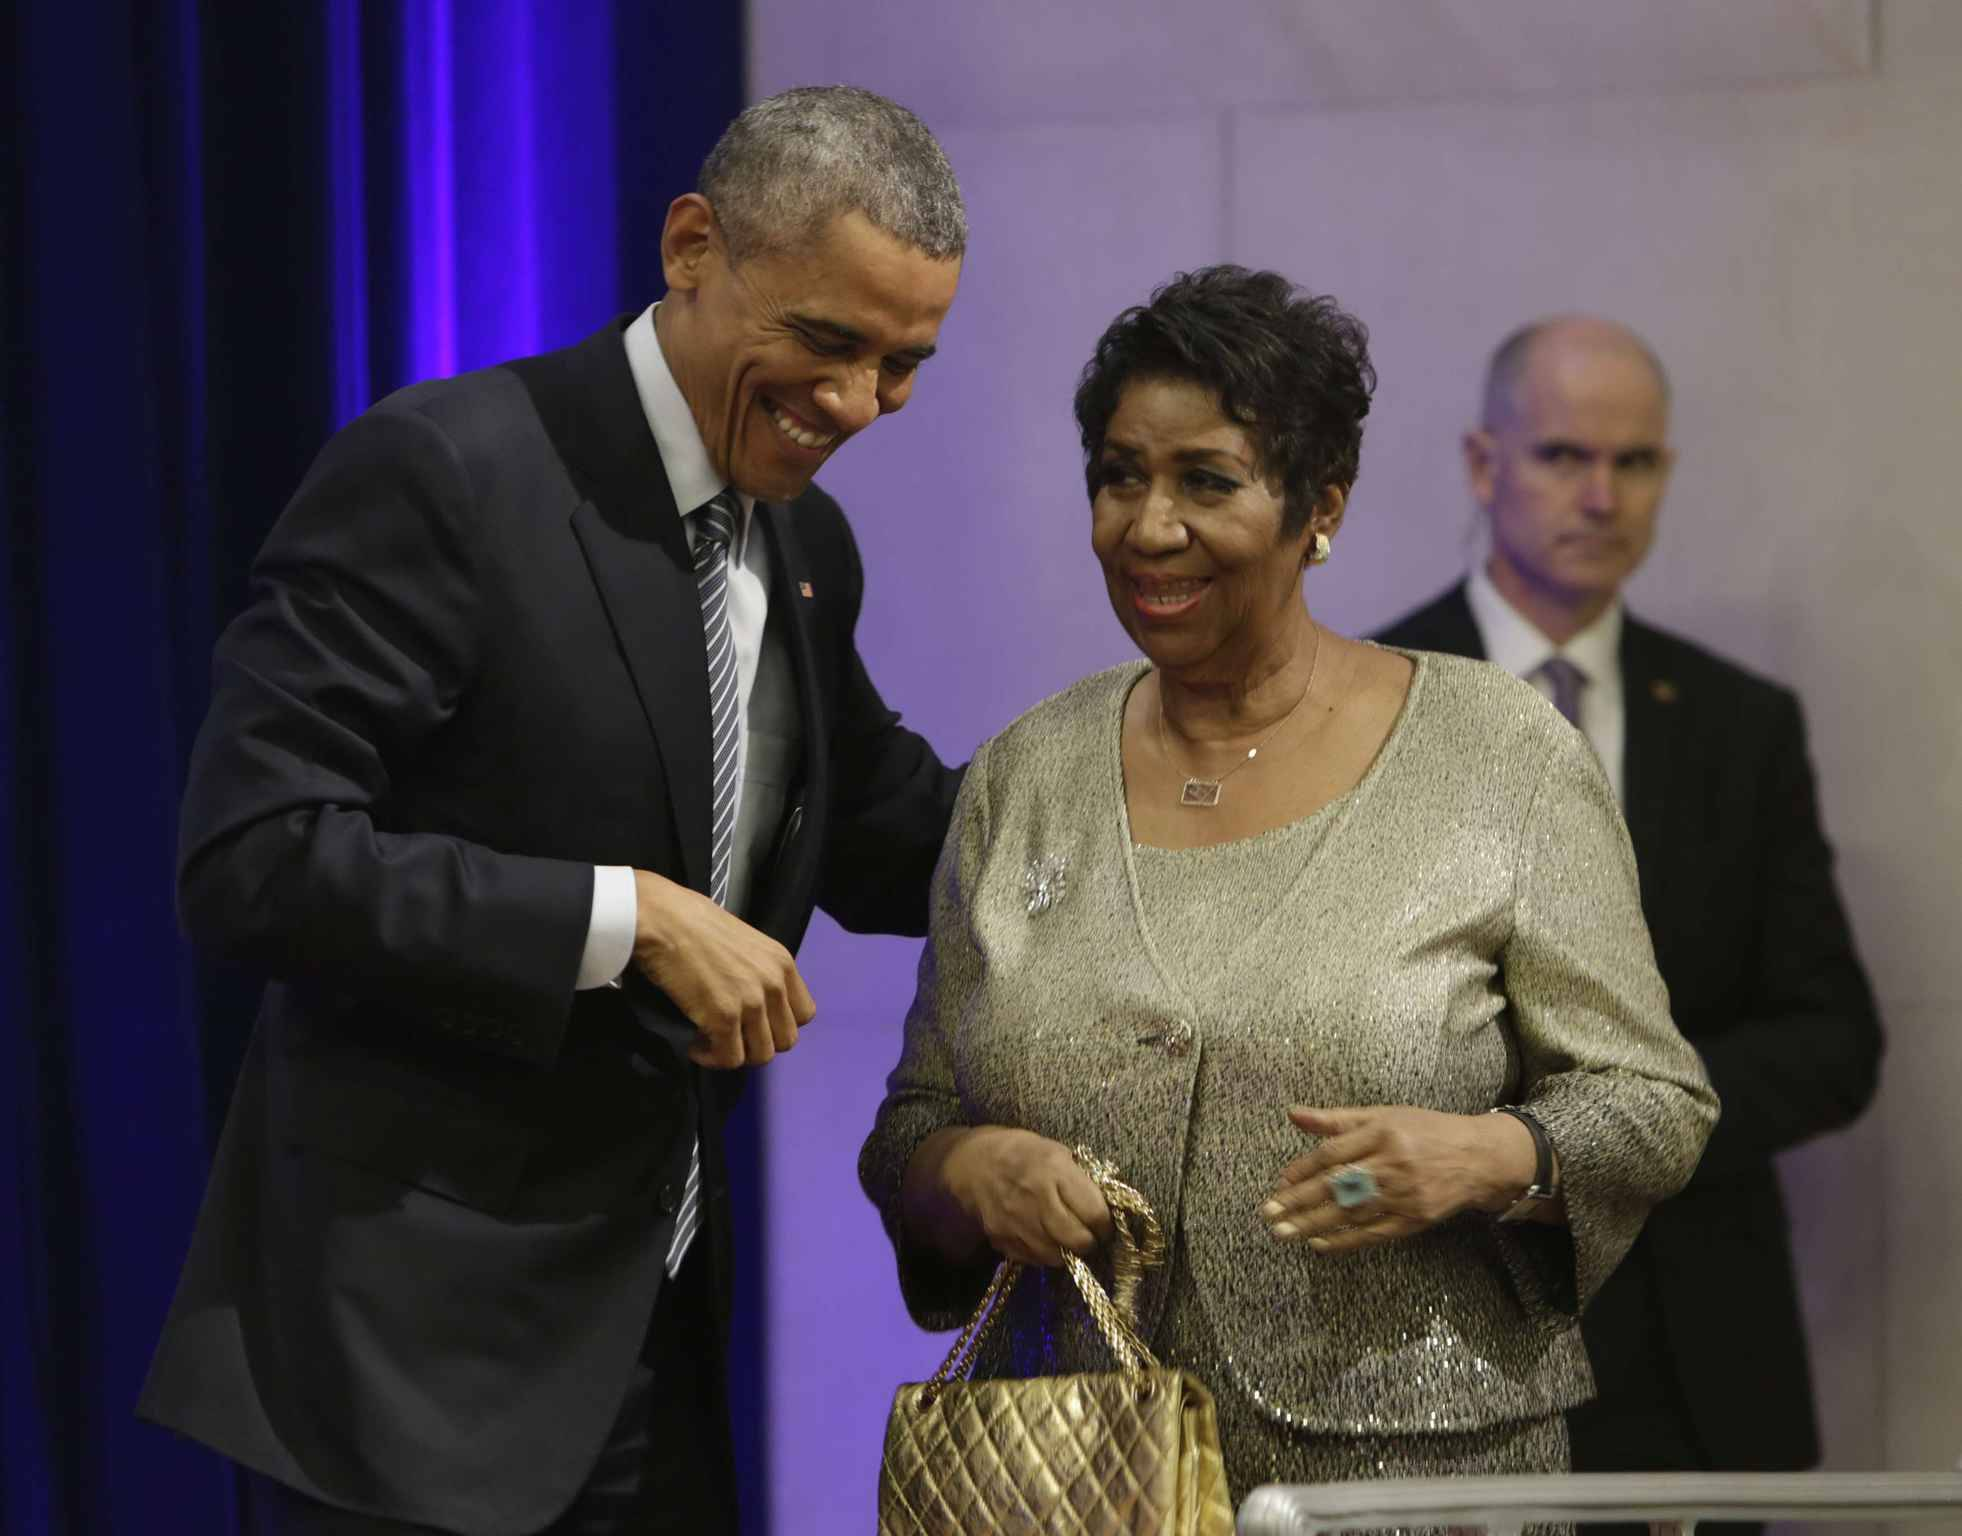 U.S. President Barack Obama welcomes Aretha Franklin as she arrives to sing at the portrait unveiling ceremony for outgoing U.S. Attorney General Eric Holder at The Department of Justice in Washington, DC, February 27, 2015. Photo by Chris Kleponis/Pool *** Please Use Credit from Credit Field ***/sipausa.sipausa_14909558/1502281519